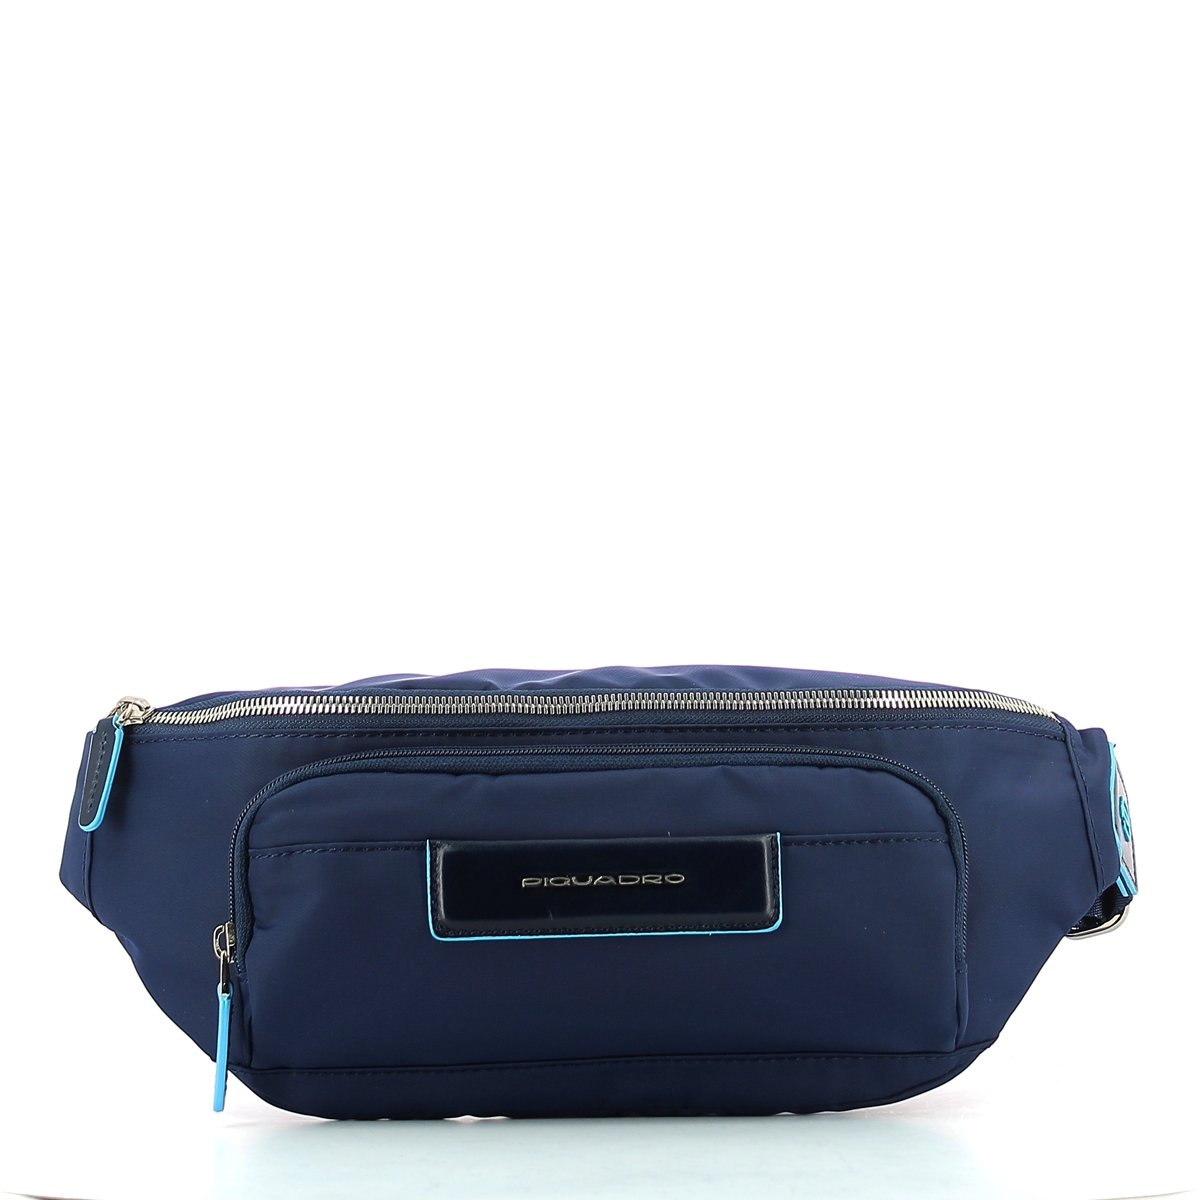 Piquadro Hüfttasche Collection celion Nylon bleu-32 cm